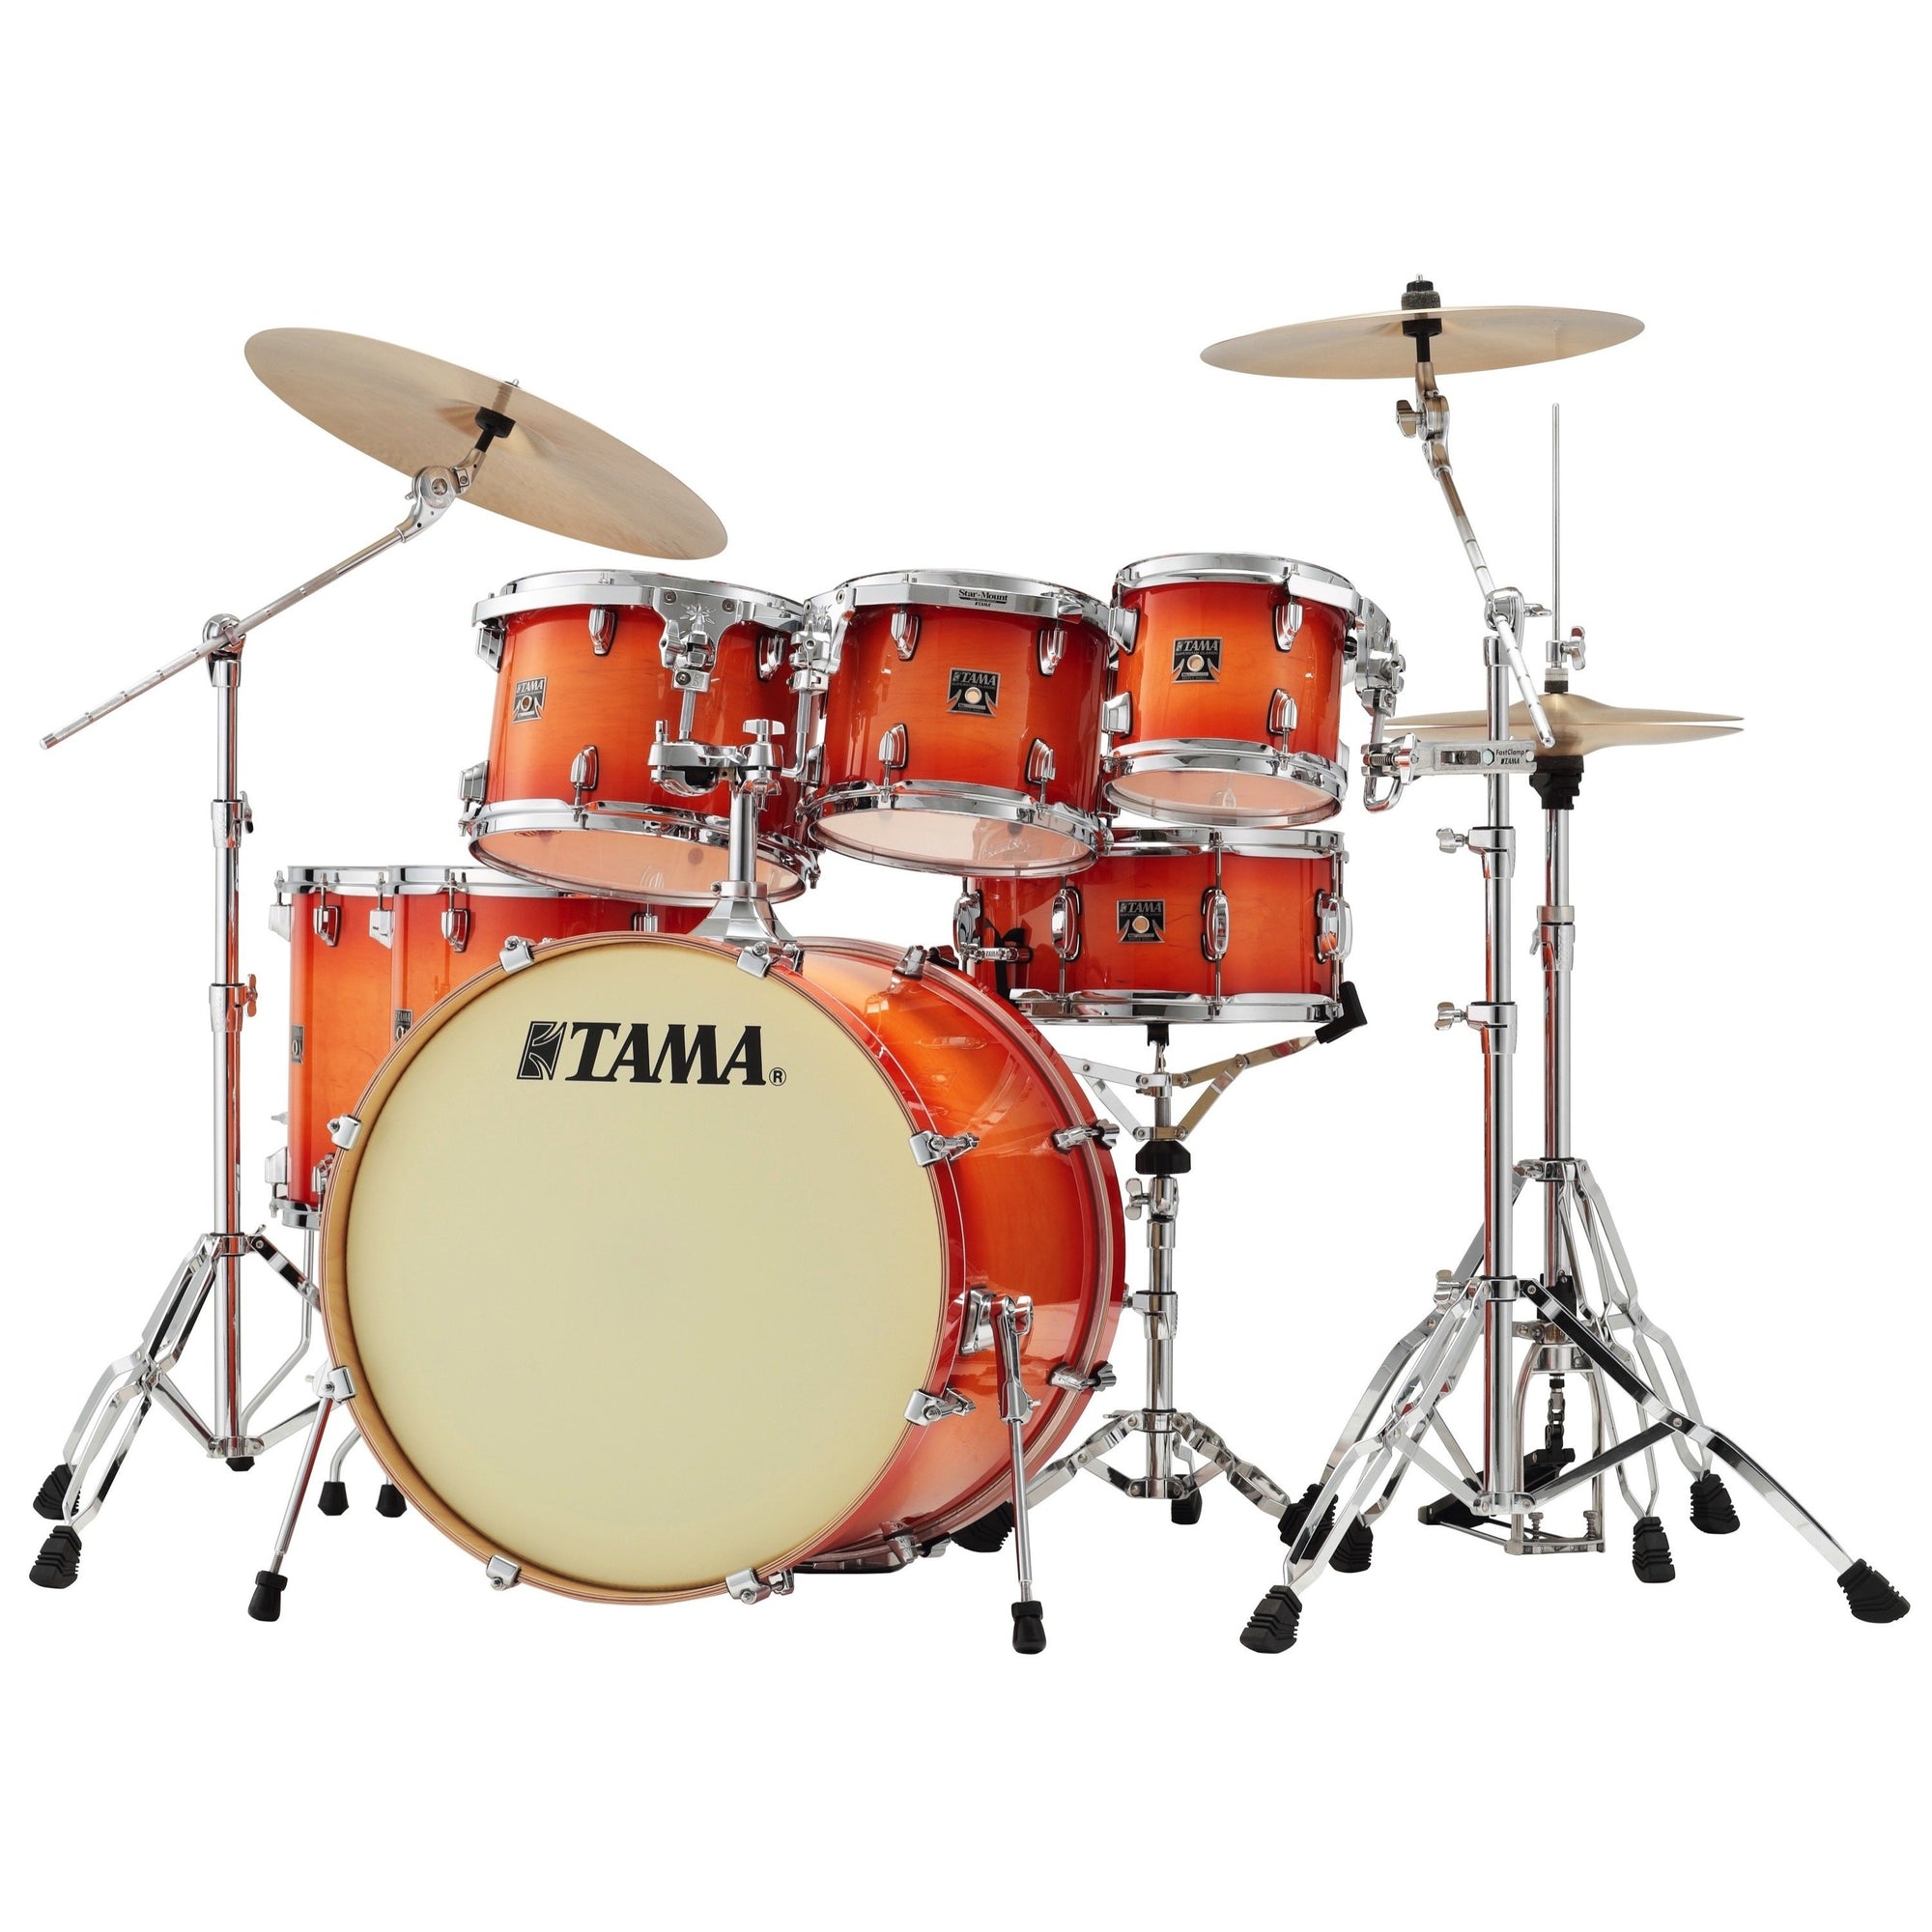 Tama CL72S Superstar Classic Drum Shell Kit, 7-Piece, Tangerine Lacquer Burst